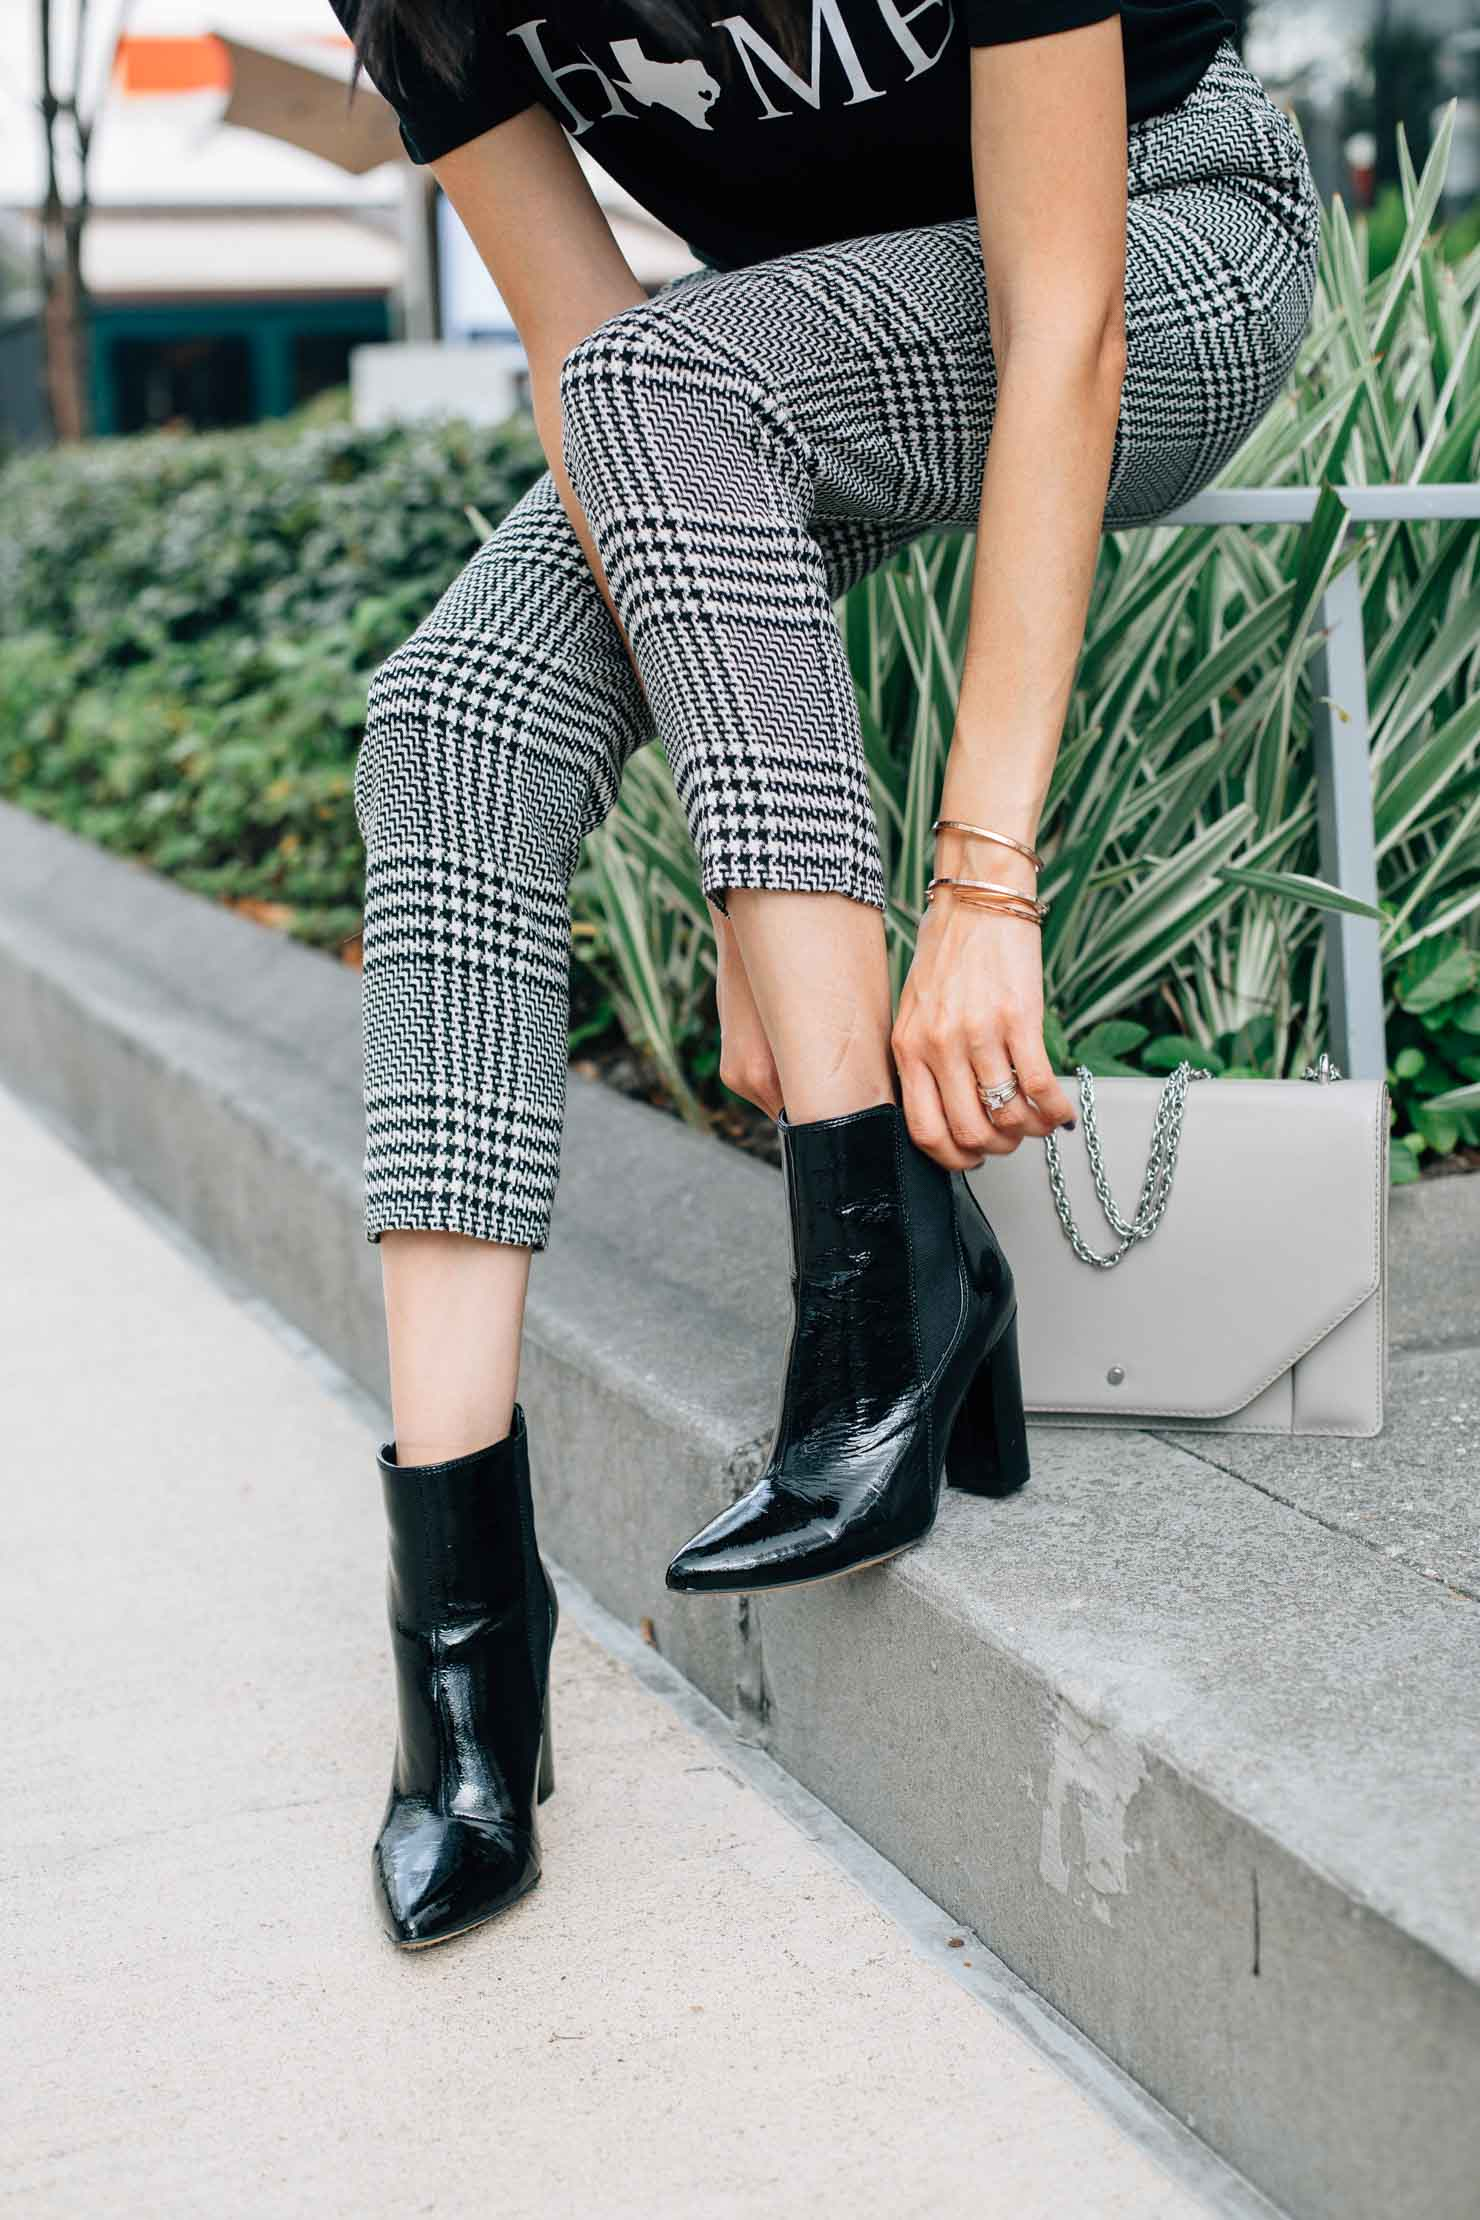 Style blogger Lilly Beltran of Daily Craving blog wearing Vince Camuto black patent leather ankle boots